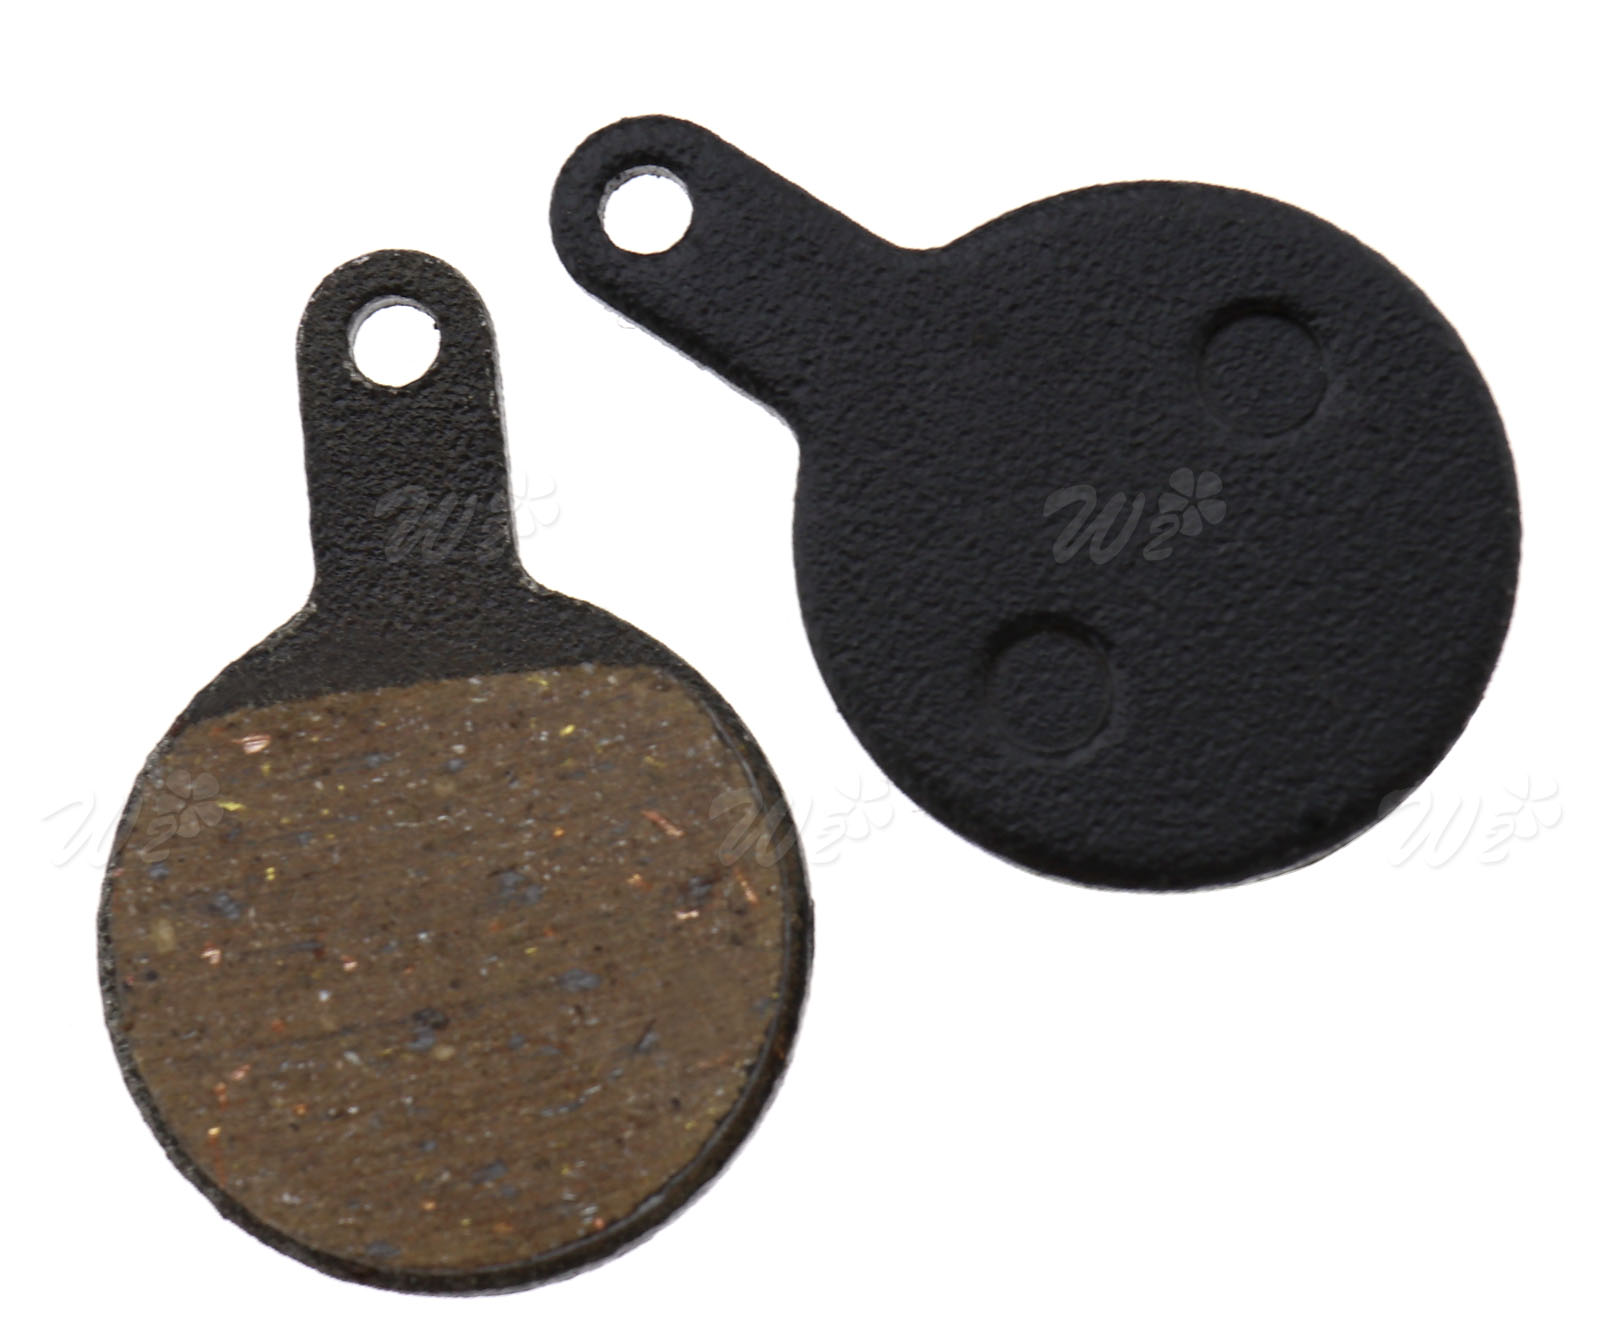 2Pairs Resin MTB Disc Brake Pads for Tektro Lyra Novela Iox Bike Disc Brake #ORP